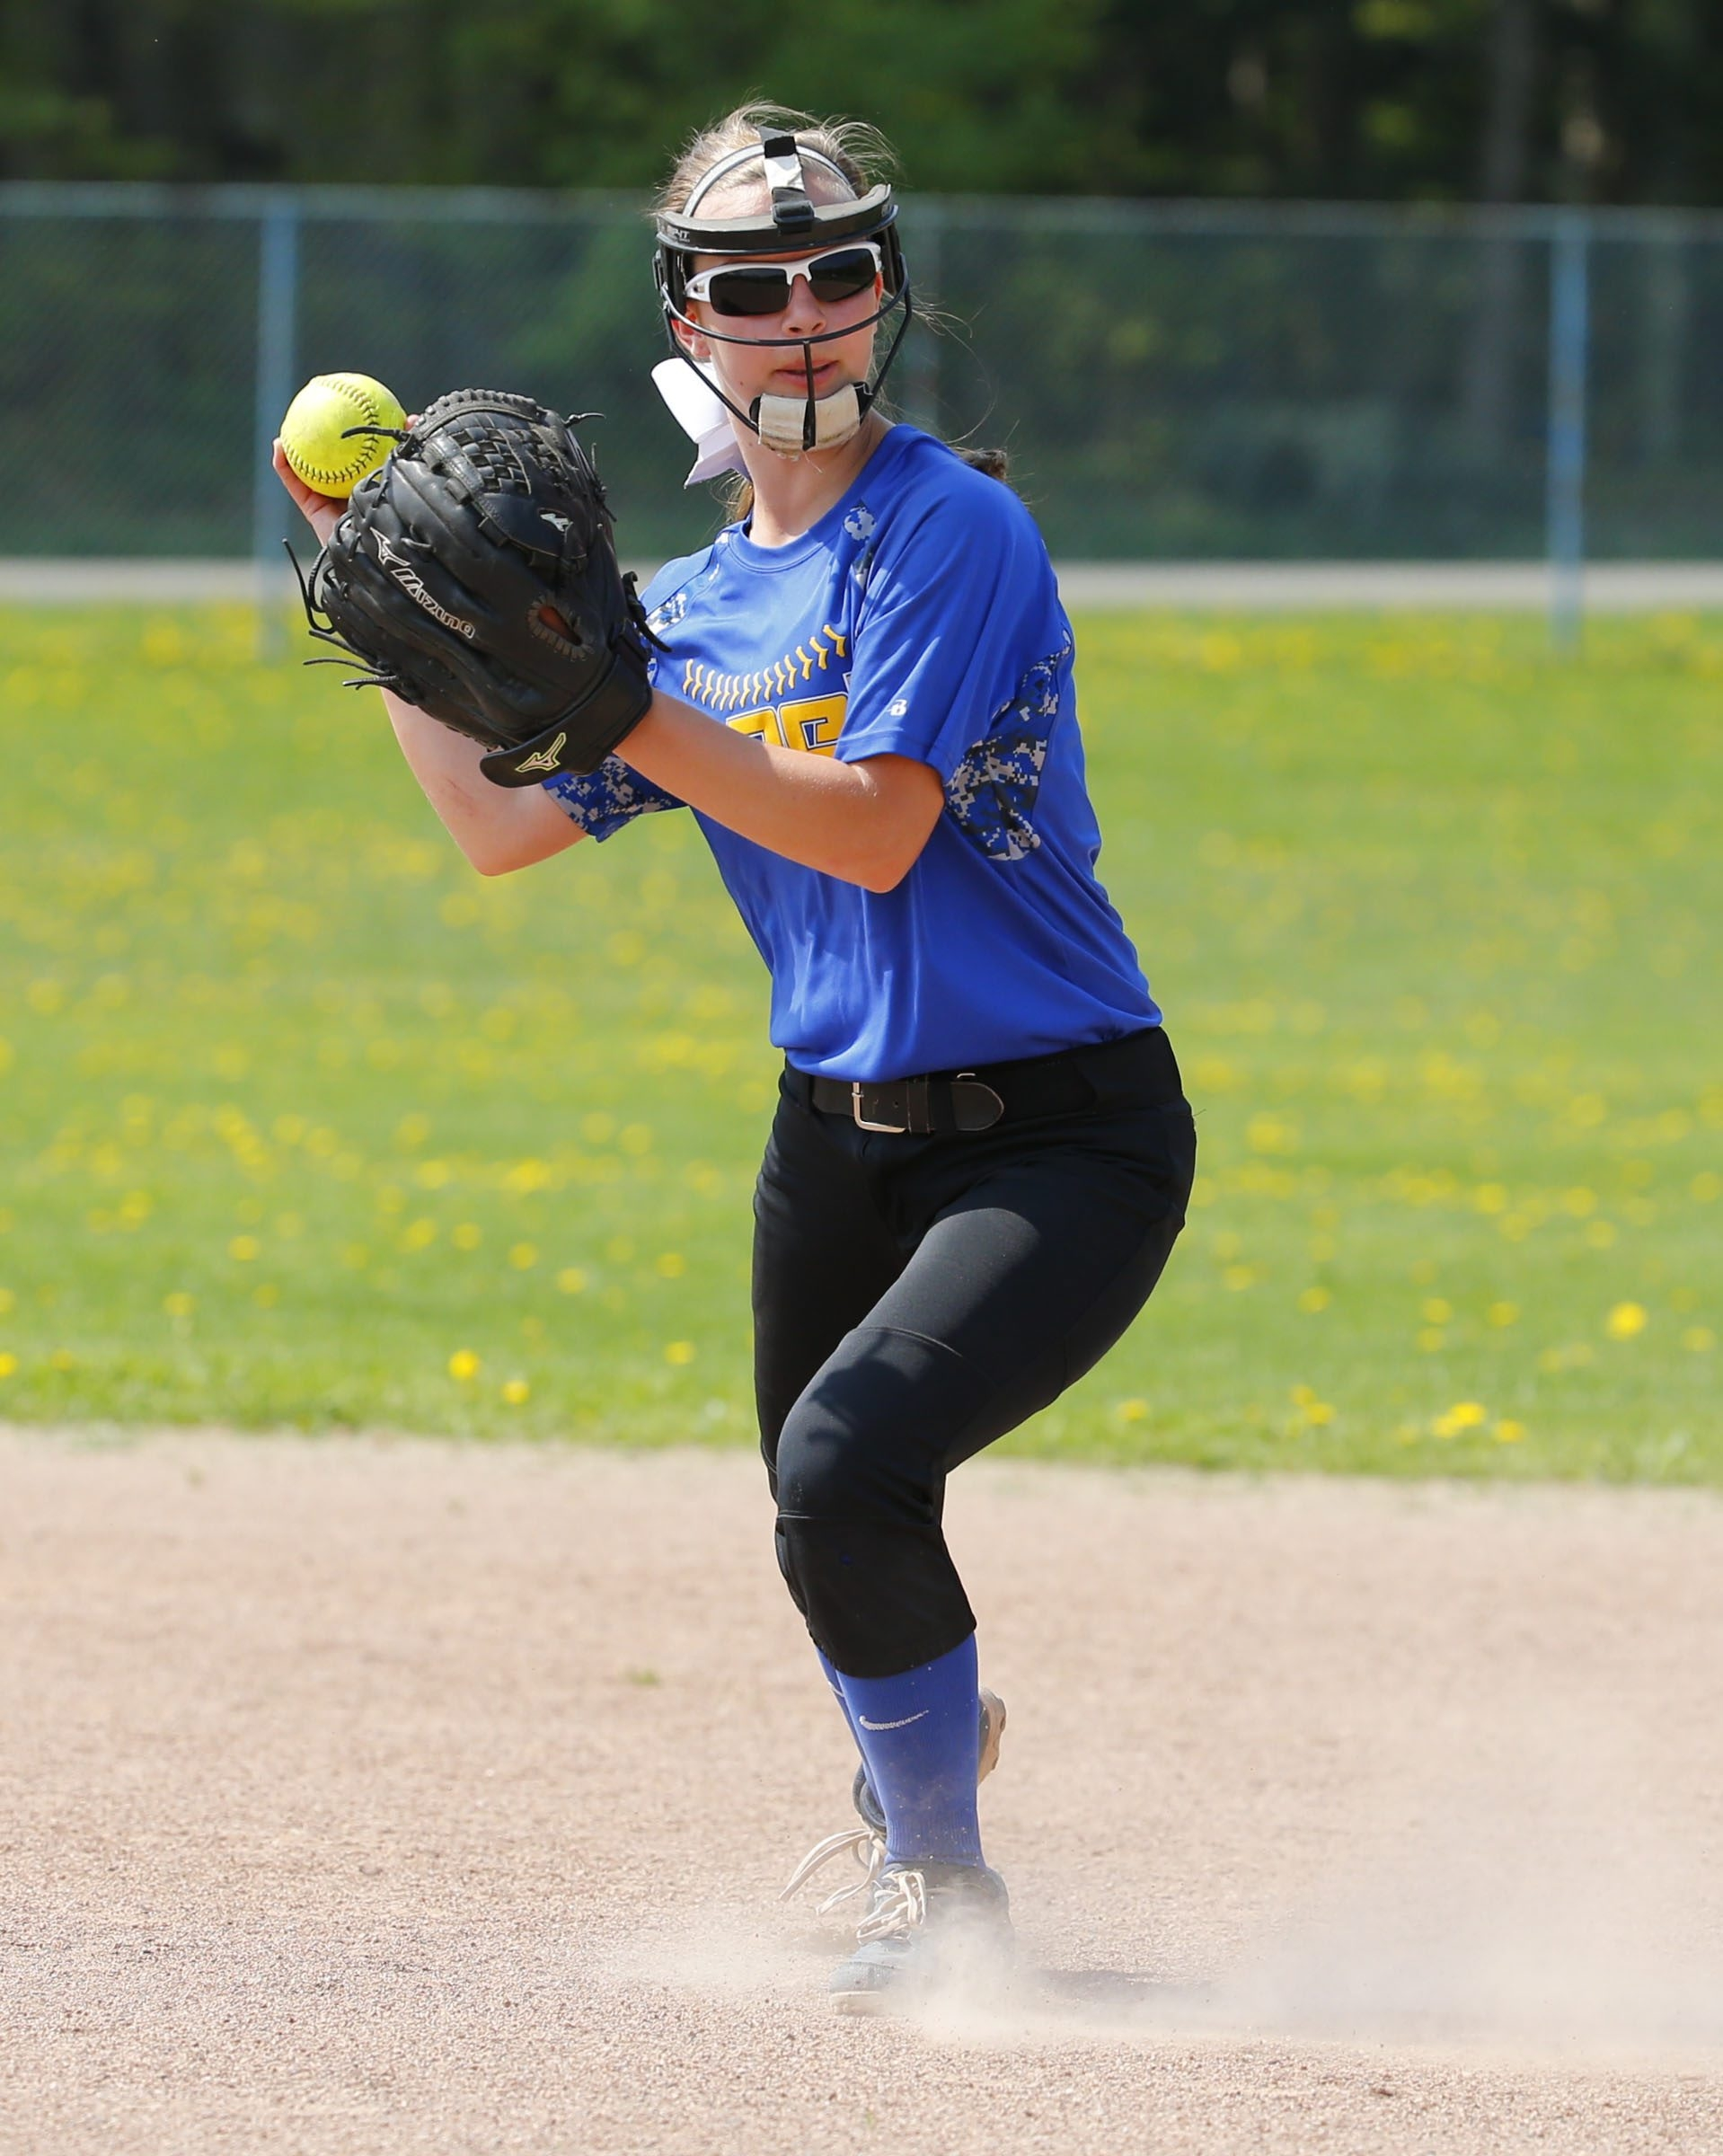 Alden's Jenna Wlostowski is only a freshman and is batting .455 for Alden, the No. 2 seed in Class B-1.